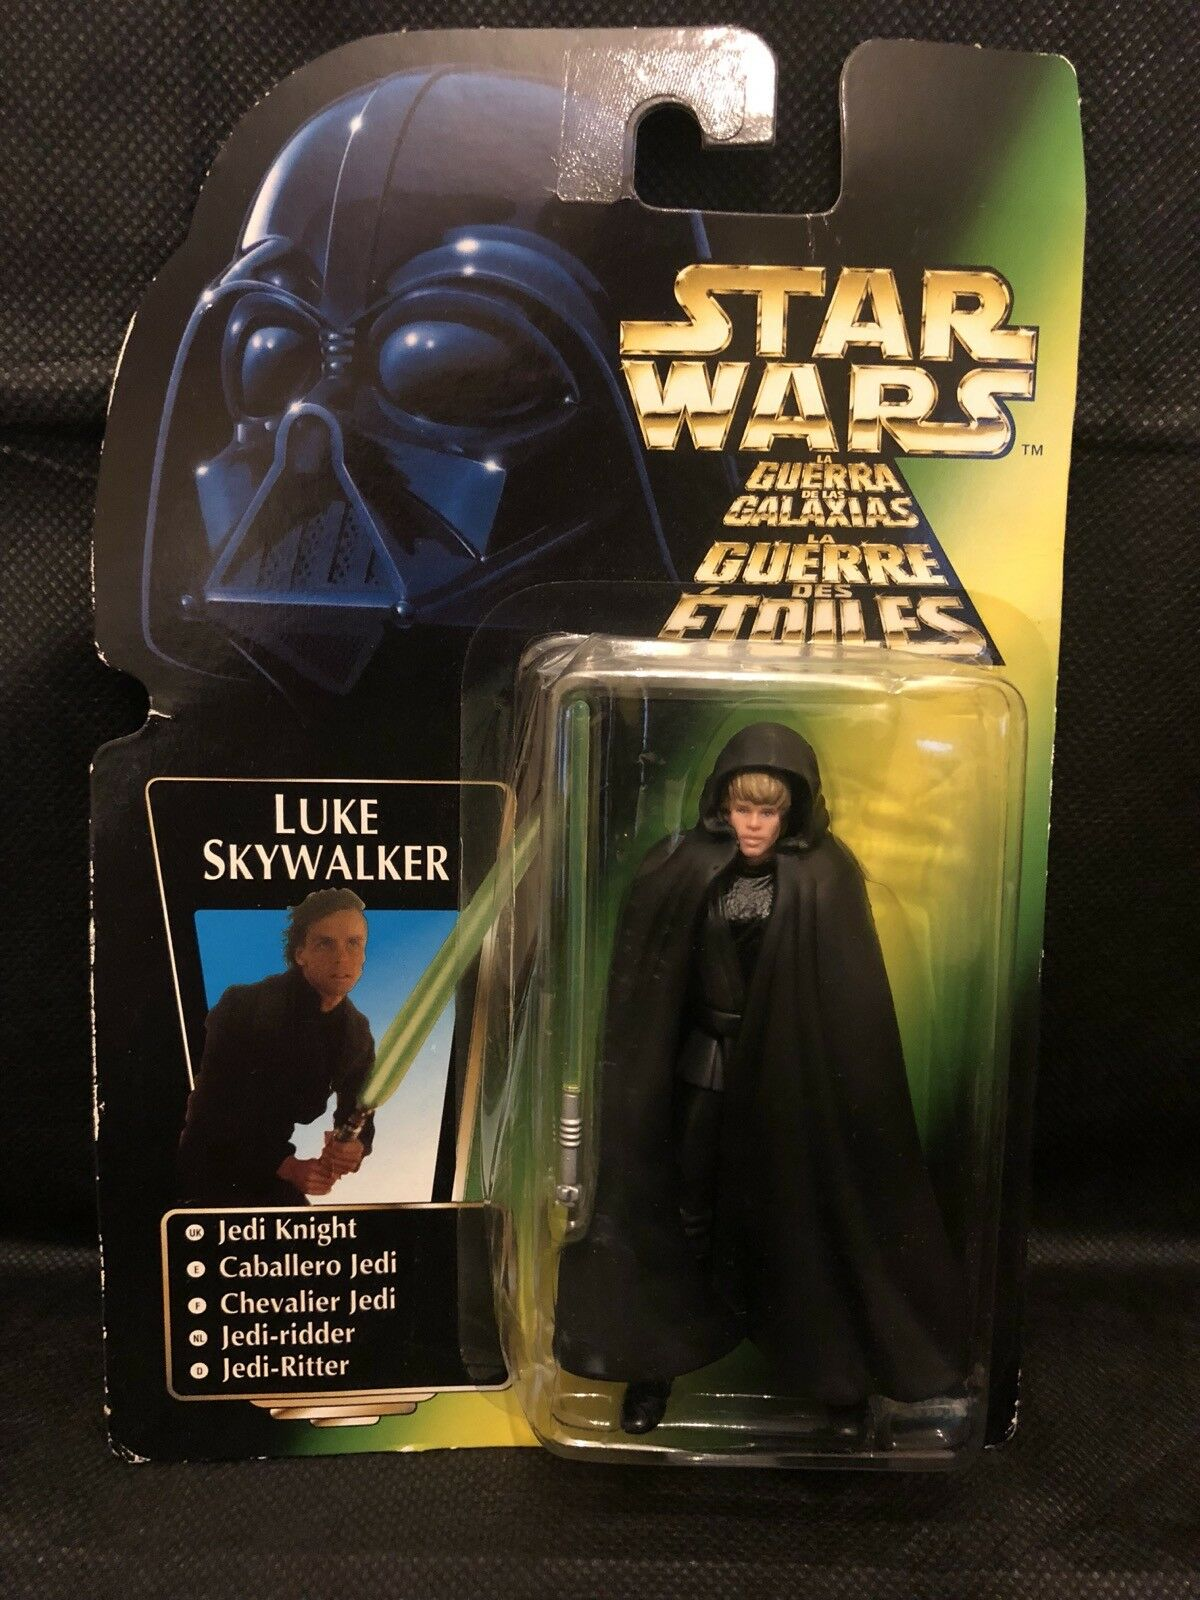 STAR KENNER WARS LUKE SKYWALKER/JEDI KNIGHT ACTION FIGURE BY KENNER STAR 1995 f61c6a